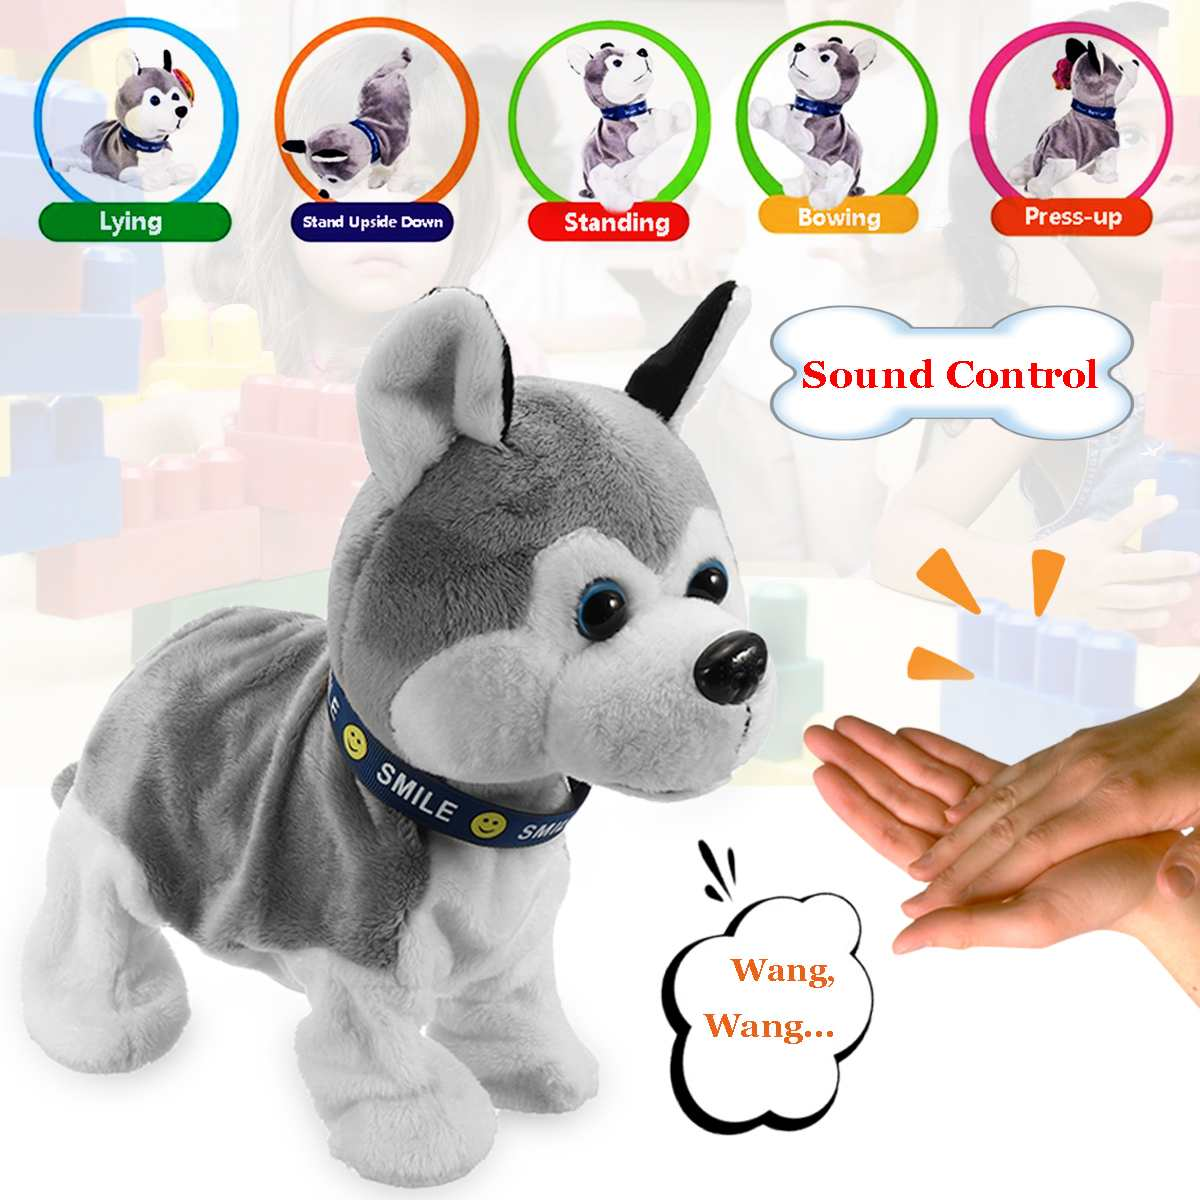 Sound Control Electronic Robot Dog Kids Plush Toy Sound Control Interactive Bark Stand Walk Electronic Toys Dog For Kids gifts image